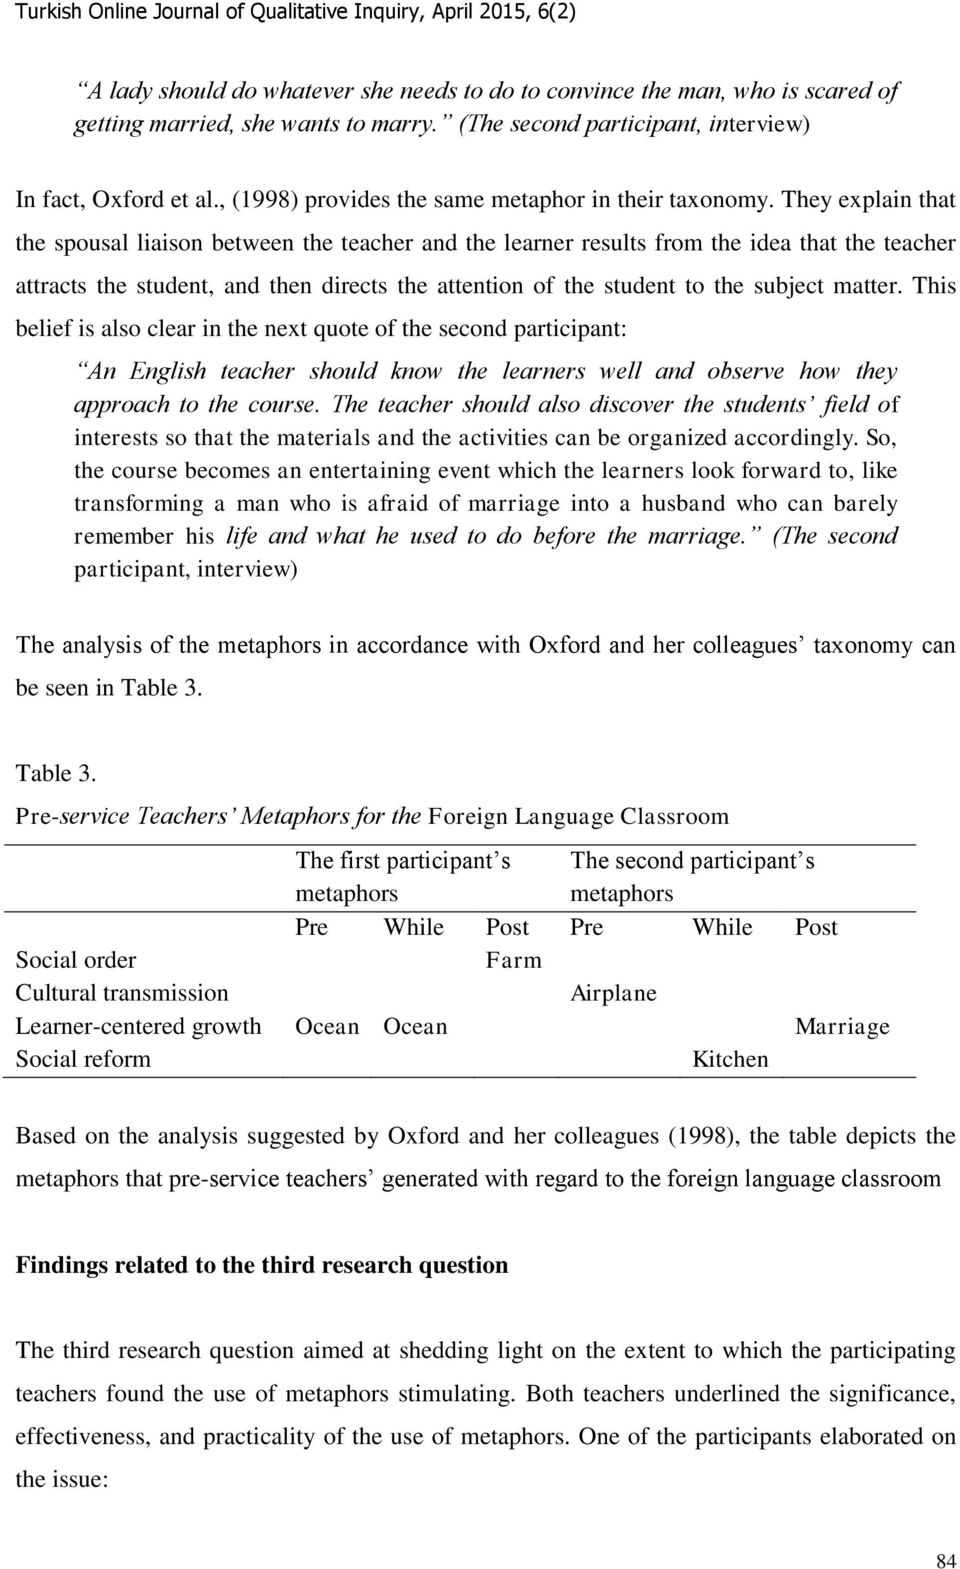 They explain that the spousal liaison between the teacher and the learner results from the idea that the teacher attracts the student, and then directs the attention of the student to the subject